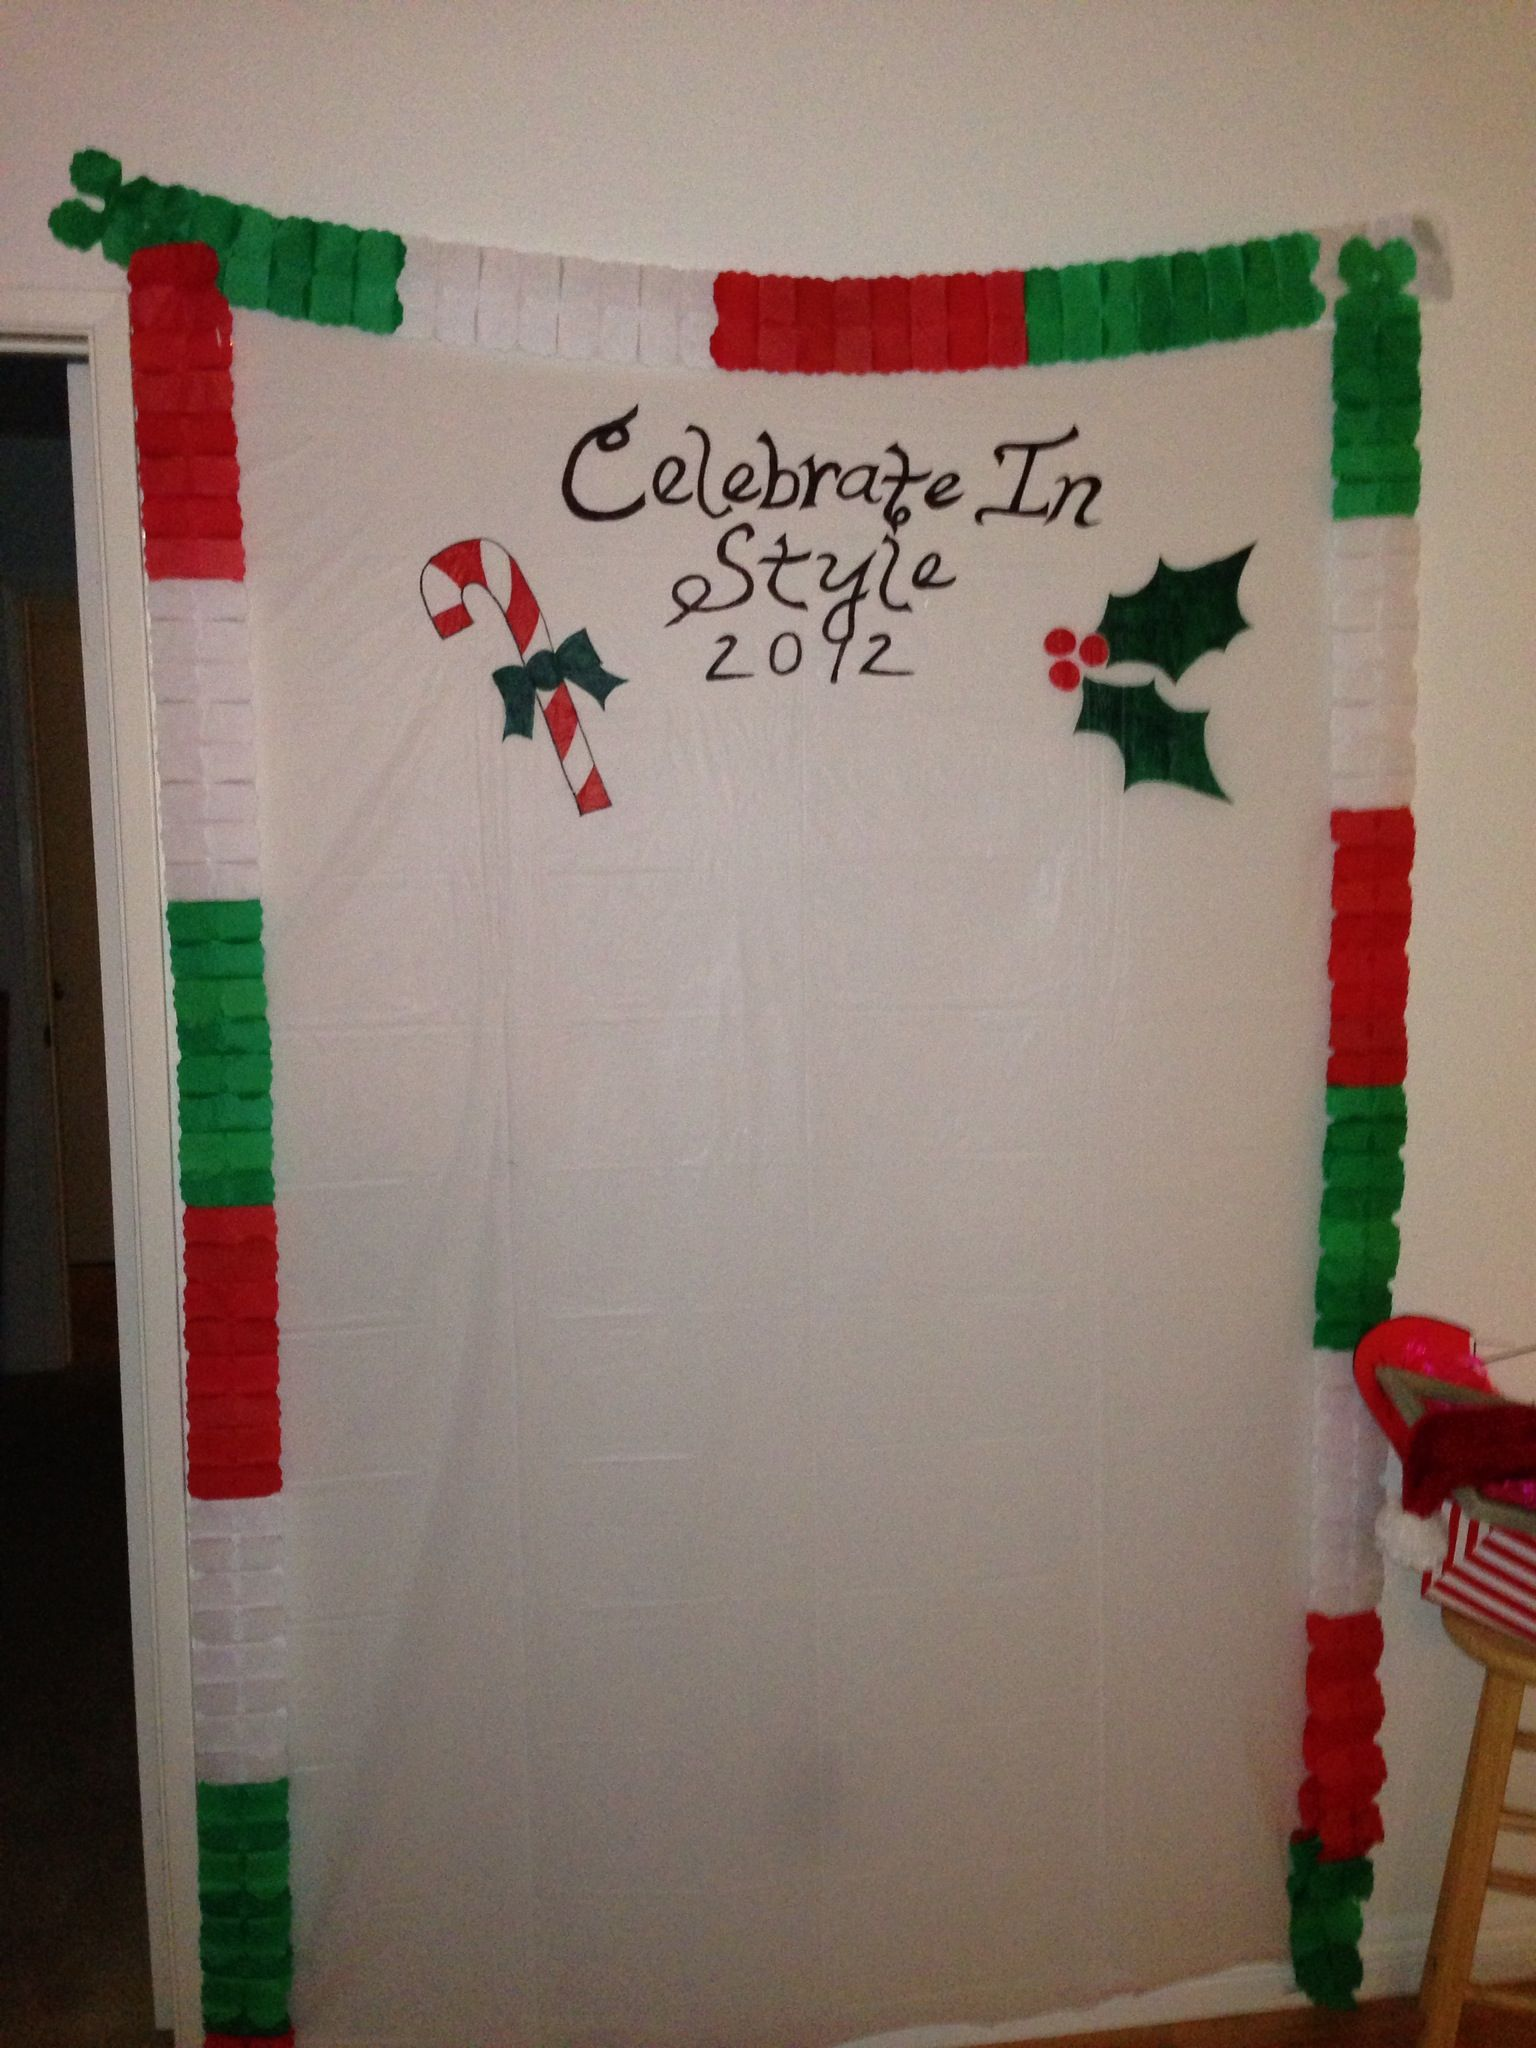 Diy christmas party table decorations - Xmas Ugly Sweater Party Backdrop For Diy Photo Shoot Needing Ideas For A Fun Ugly Christmas